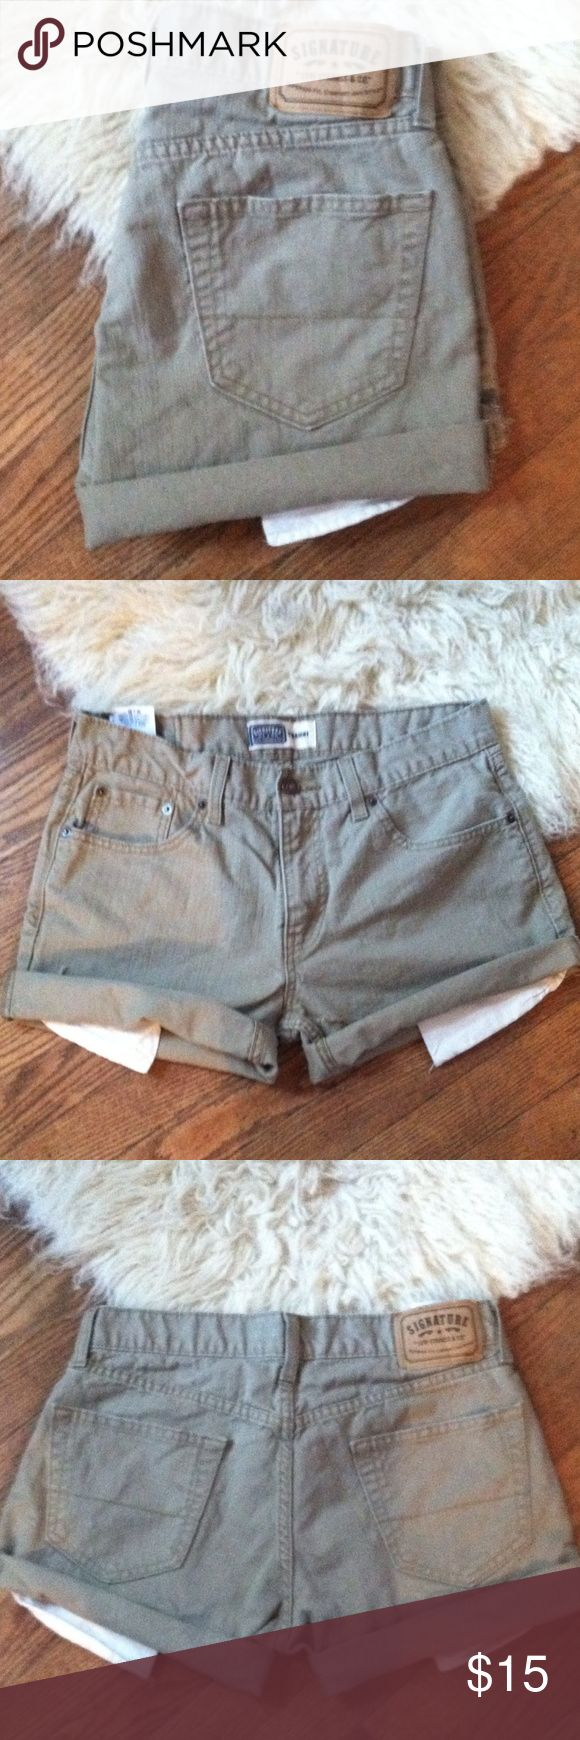 Levi's mid rise jeans denim shorts •Excellent used condition •These were originally men's waist size 30x30 straight leg jeans that I cut into shorts •The size is equivalent to a Women's size 12 (Waist size 31) •Mid rise •Color: Tan •Brand: Levi's •NO TRADES Levi's Shorts Jean Shorts